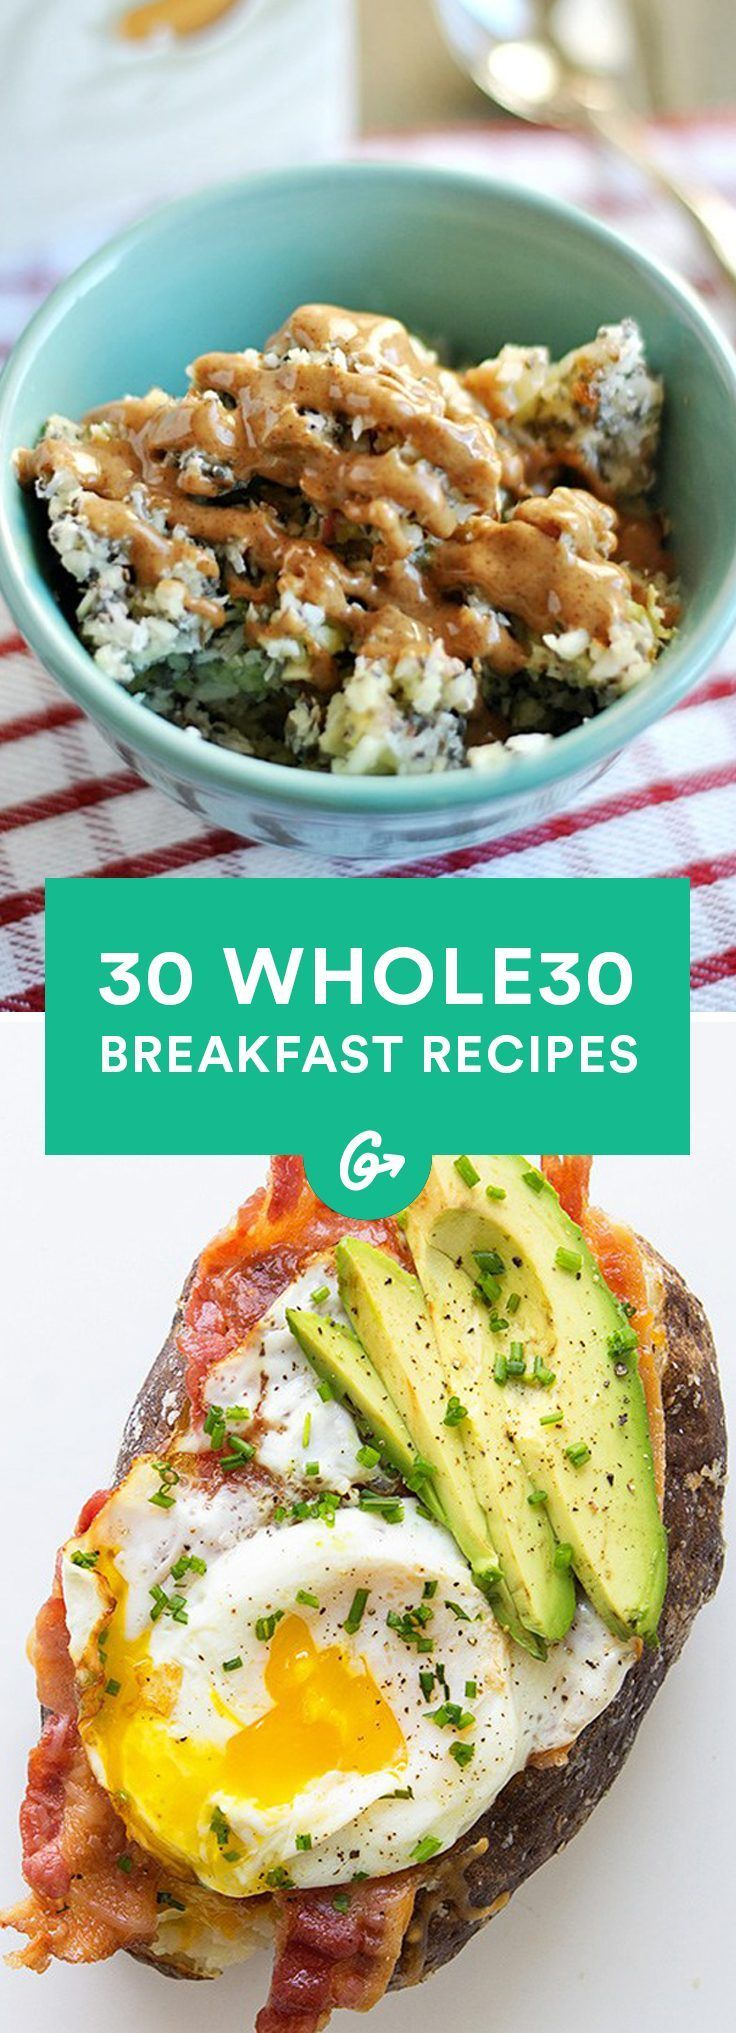 Not all in on the whole30 thing, but some of these recipes look incredible